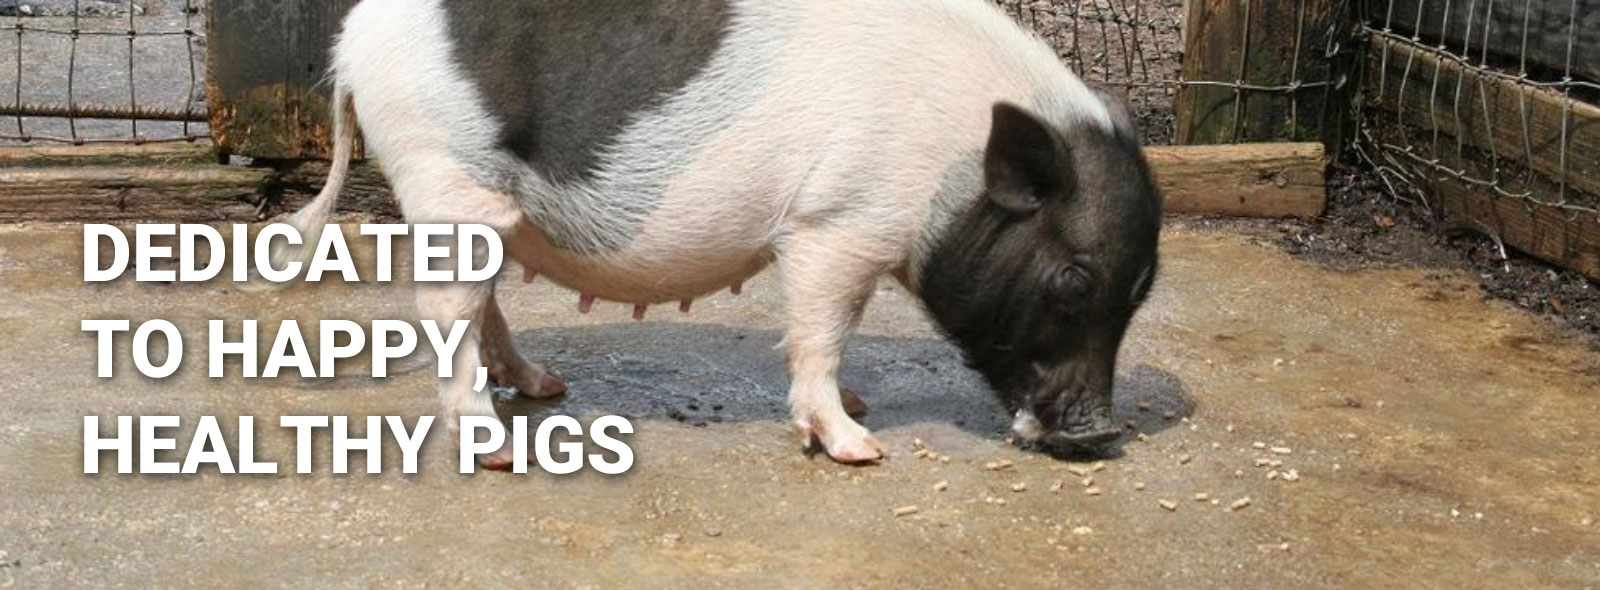 Miniature Potbellied Pigs